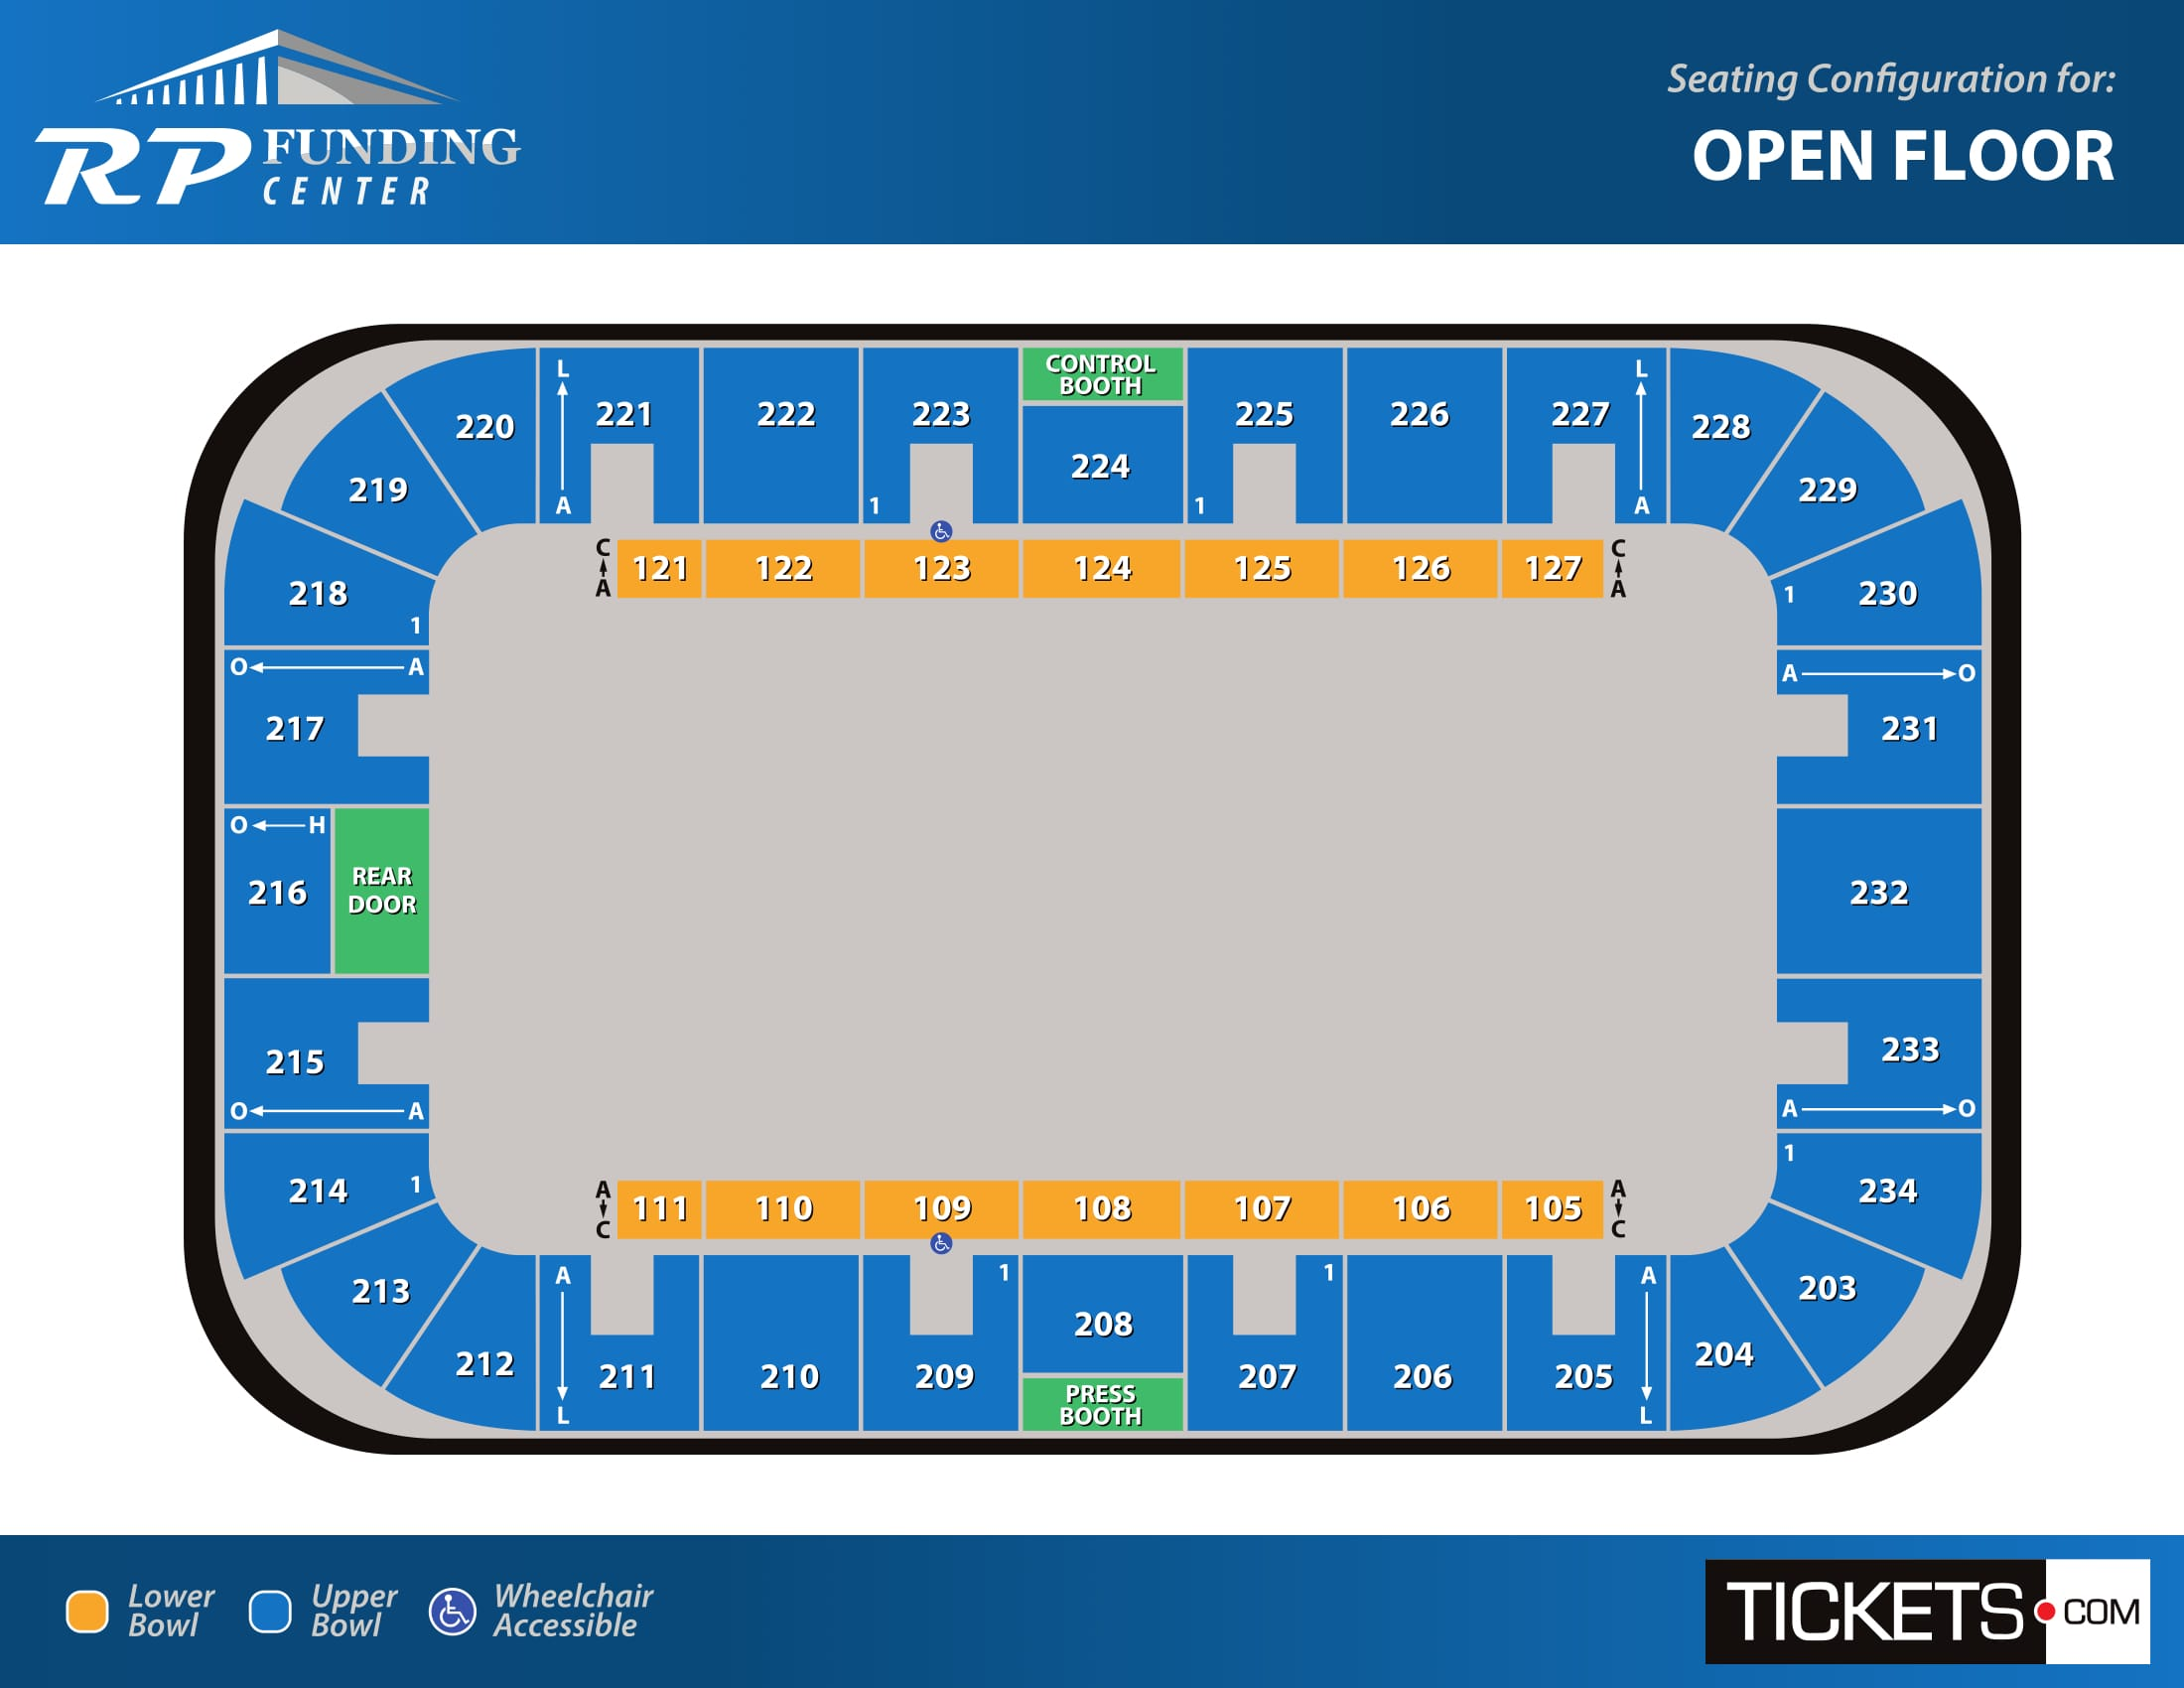 Open Floor seating map